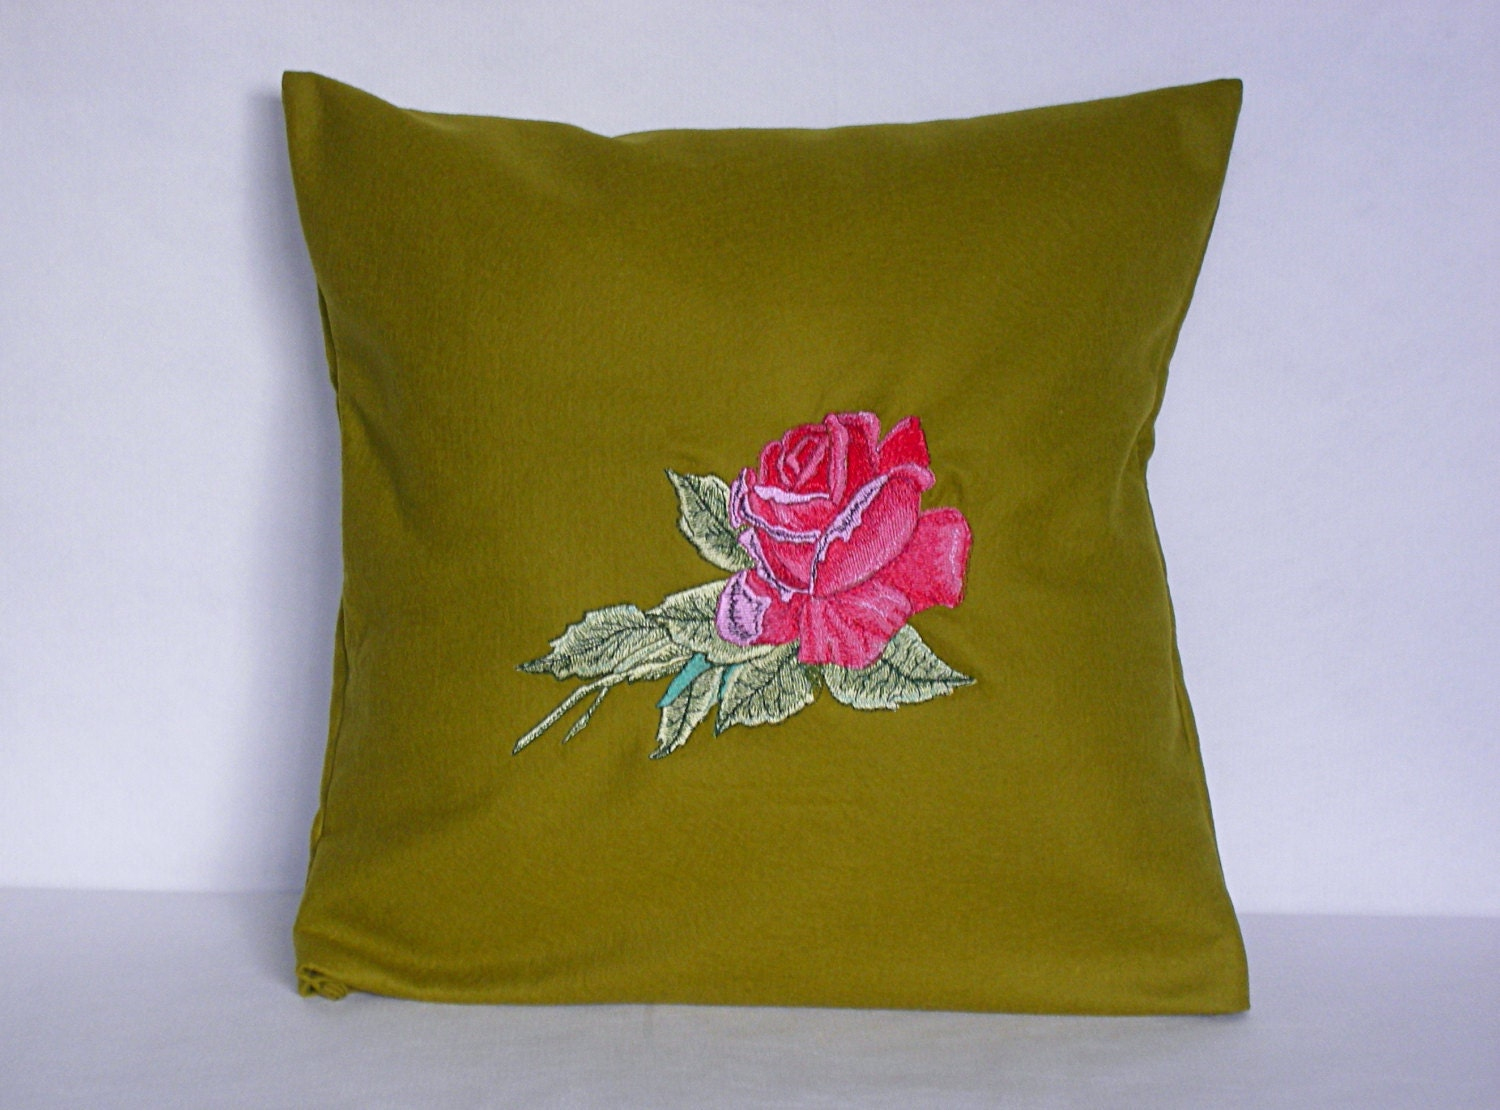 Mustard Throw Pillow Covers : Mustard Green Pillow Cover Throw Pillow 16x16 inch Rustic